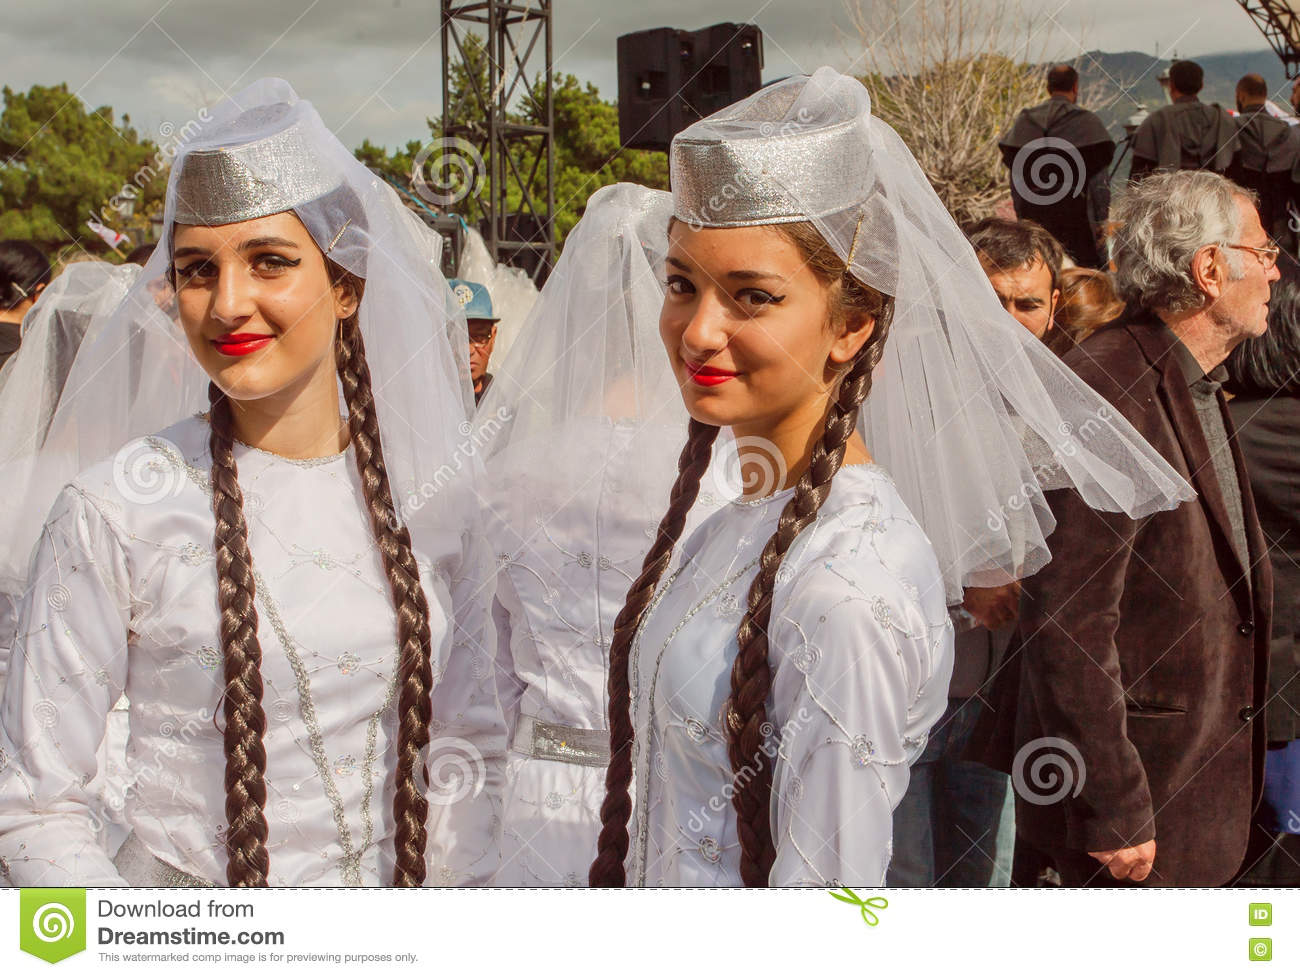 Cute girls in traditional white Georgian costumes ready for dancing performance in Georgia